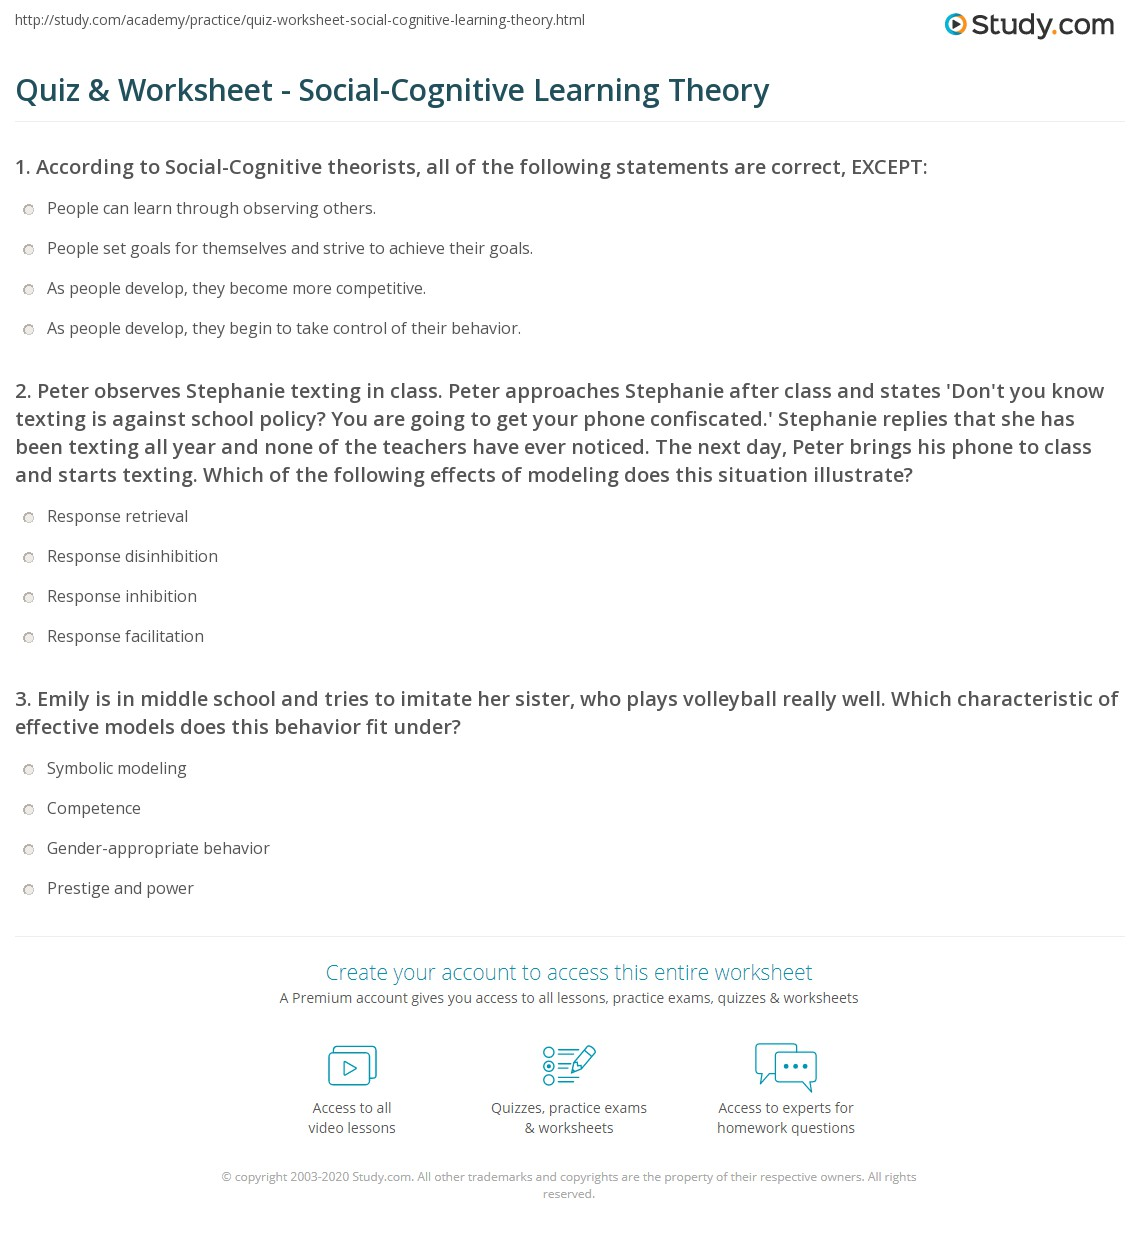 ap psychology essay question intelligence Unit 8 ap psychology -generating the single correct answer to an intelligence test question phdessay is an educational resource where over 40,000 free essays.